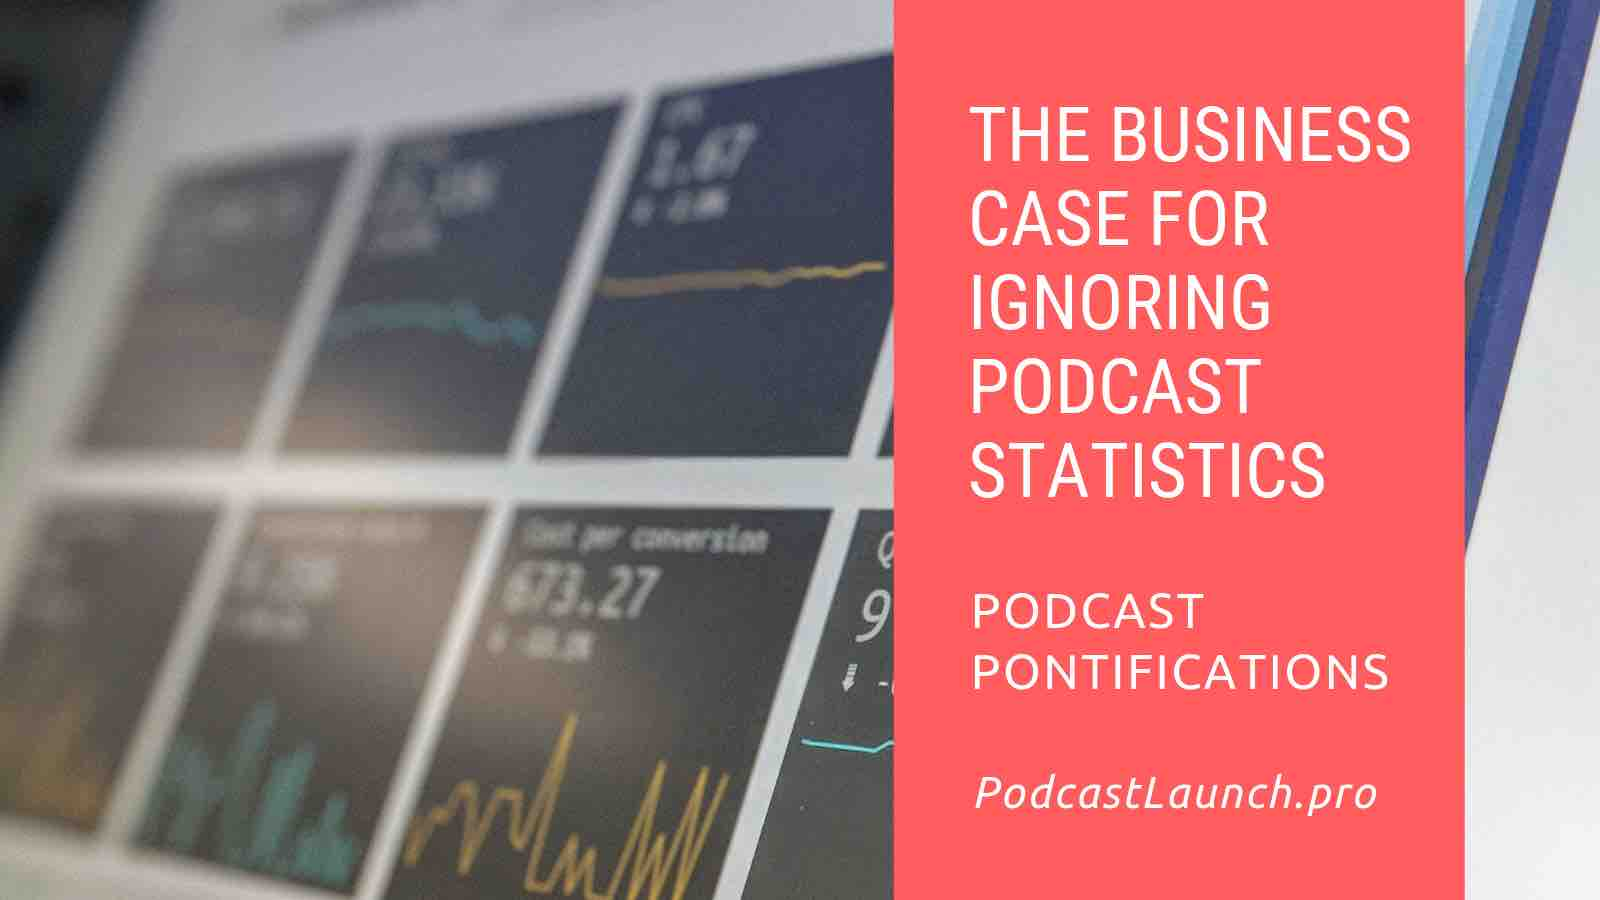 The Business Case For Ignoring Podcast Statistics